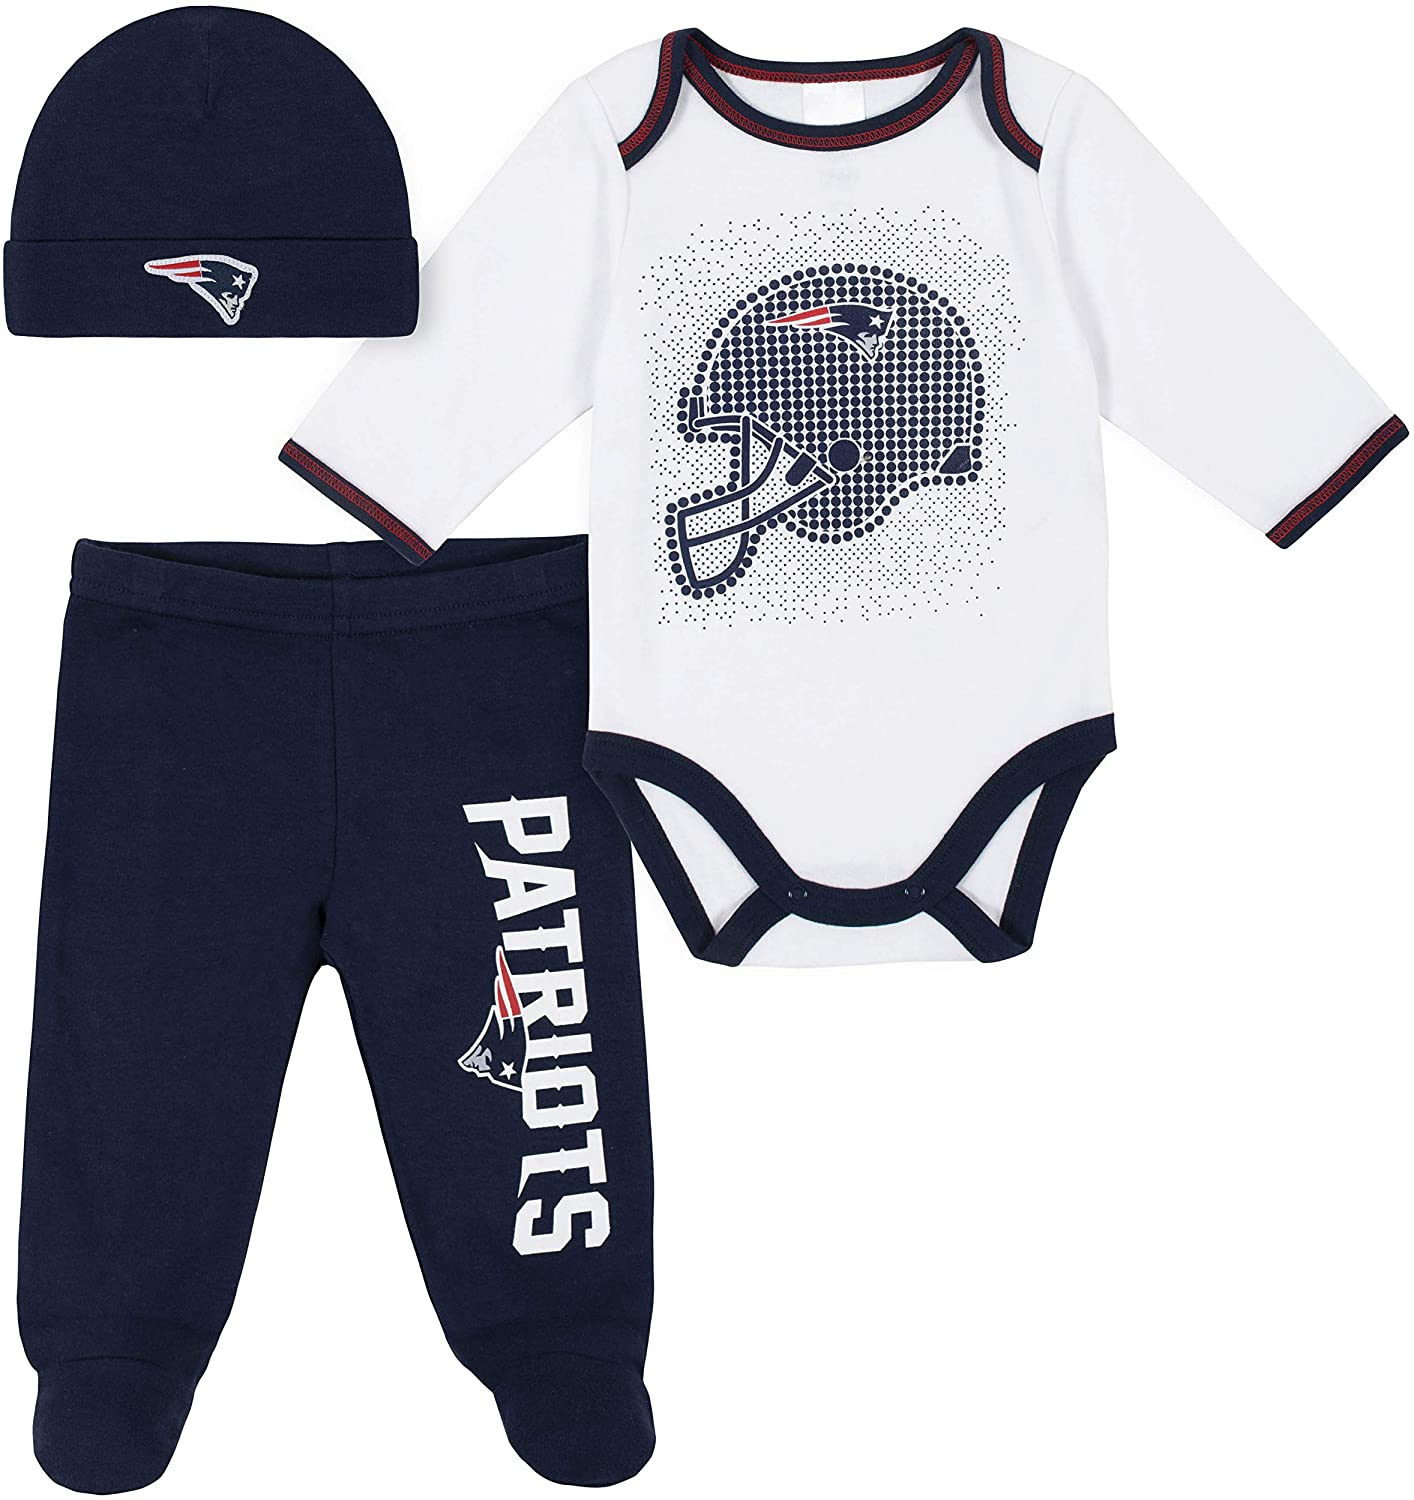 NFL New England Patriots 3 Pack Bodysuit Footed Pant and Cap Registry Gift Set, Blue/White New England Patriots, 6-9M